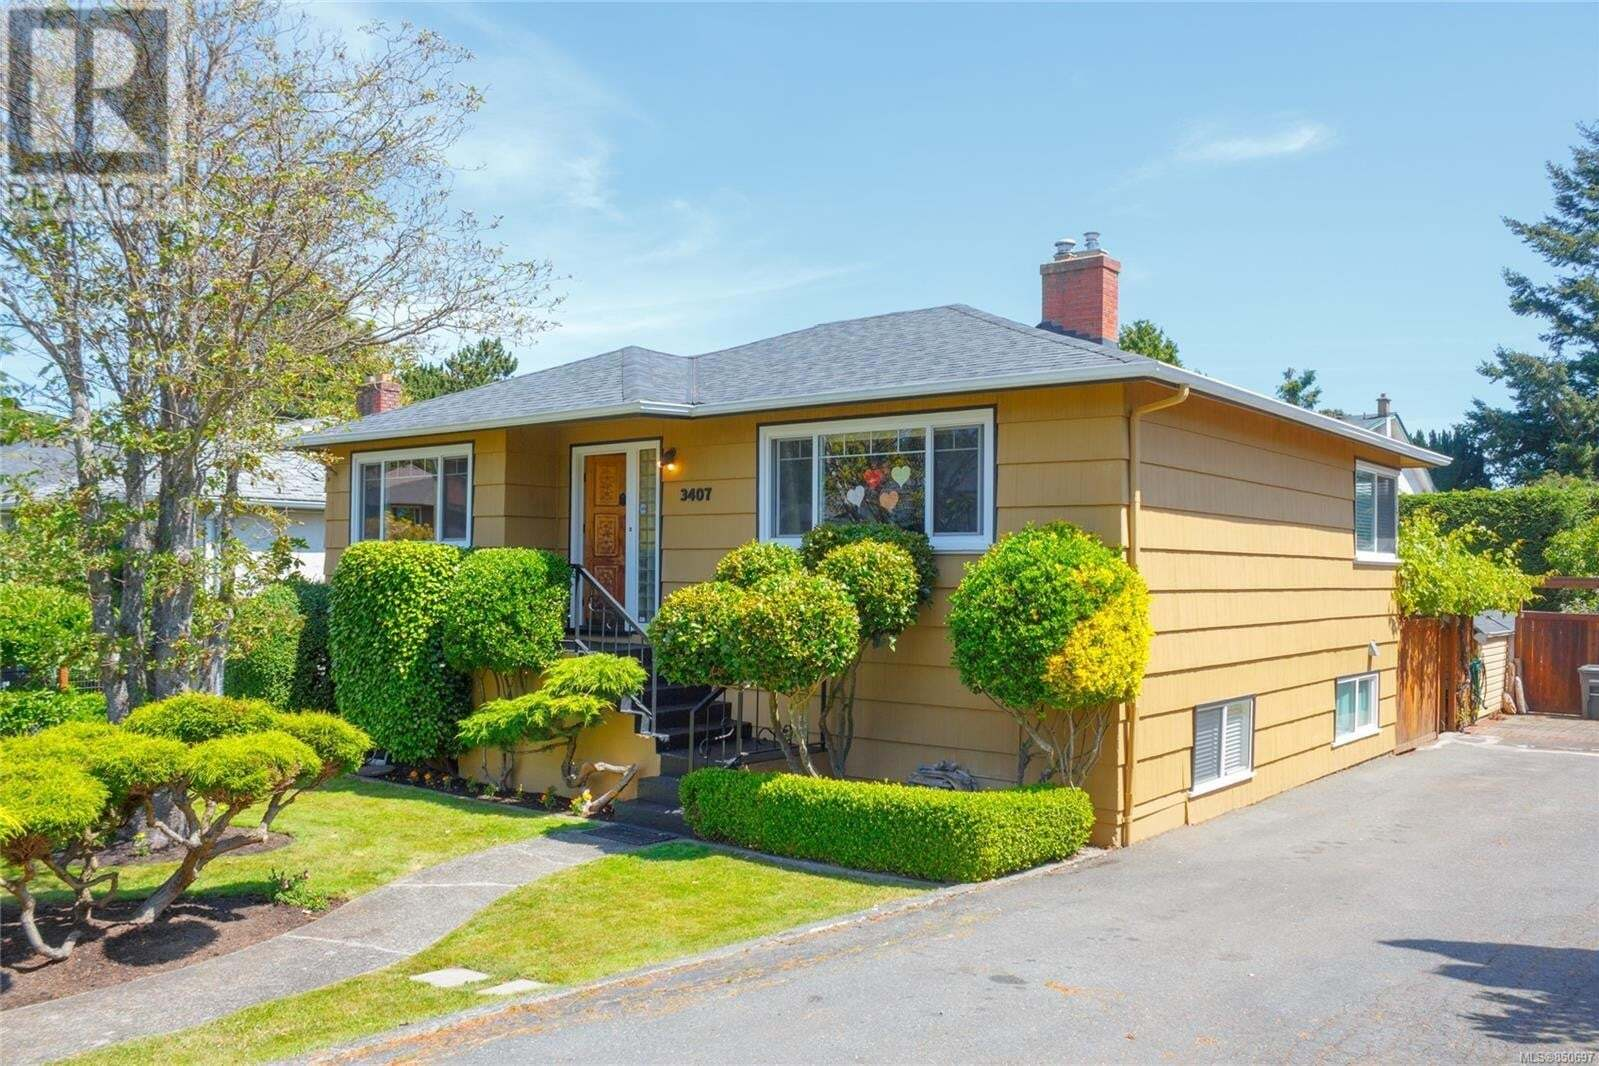 House for sale at 3407 Doncaster  Saanich British Columbia - MLS: 850697